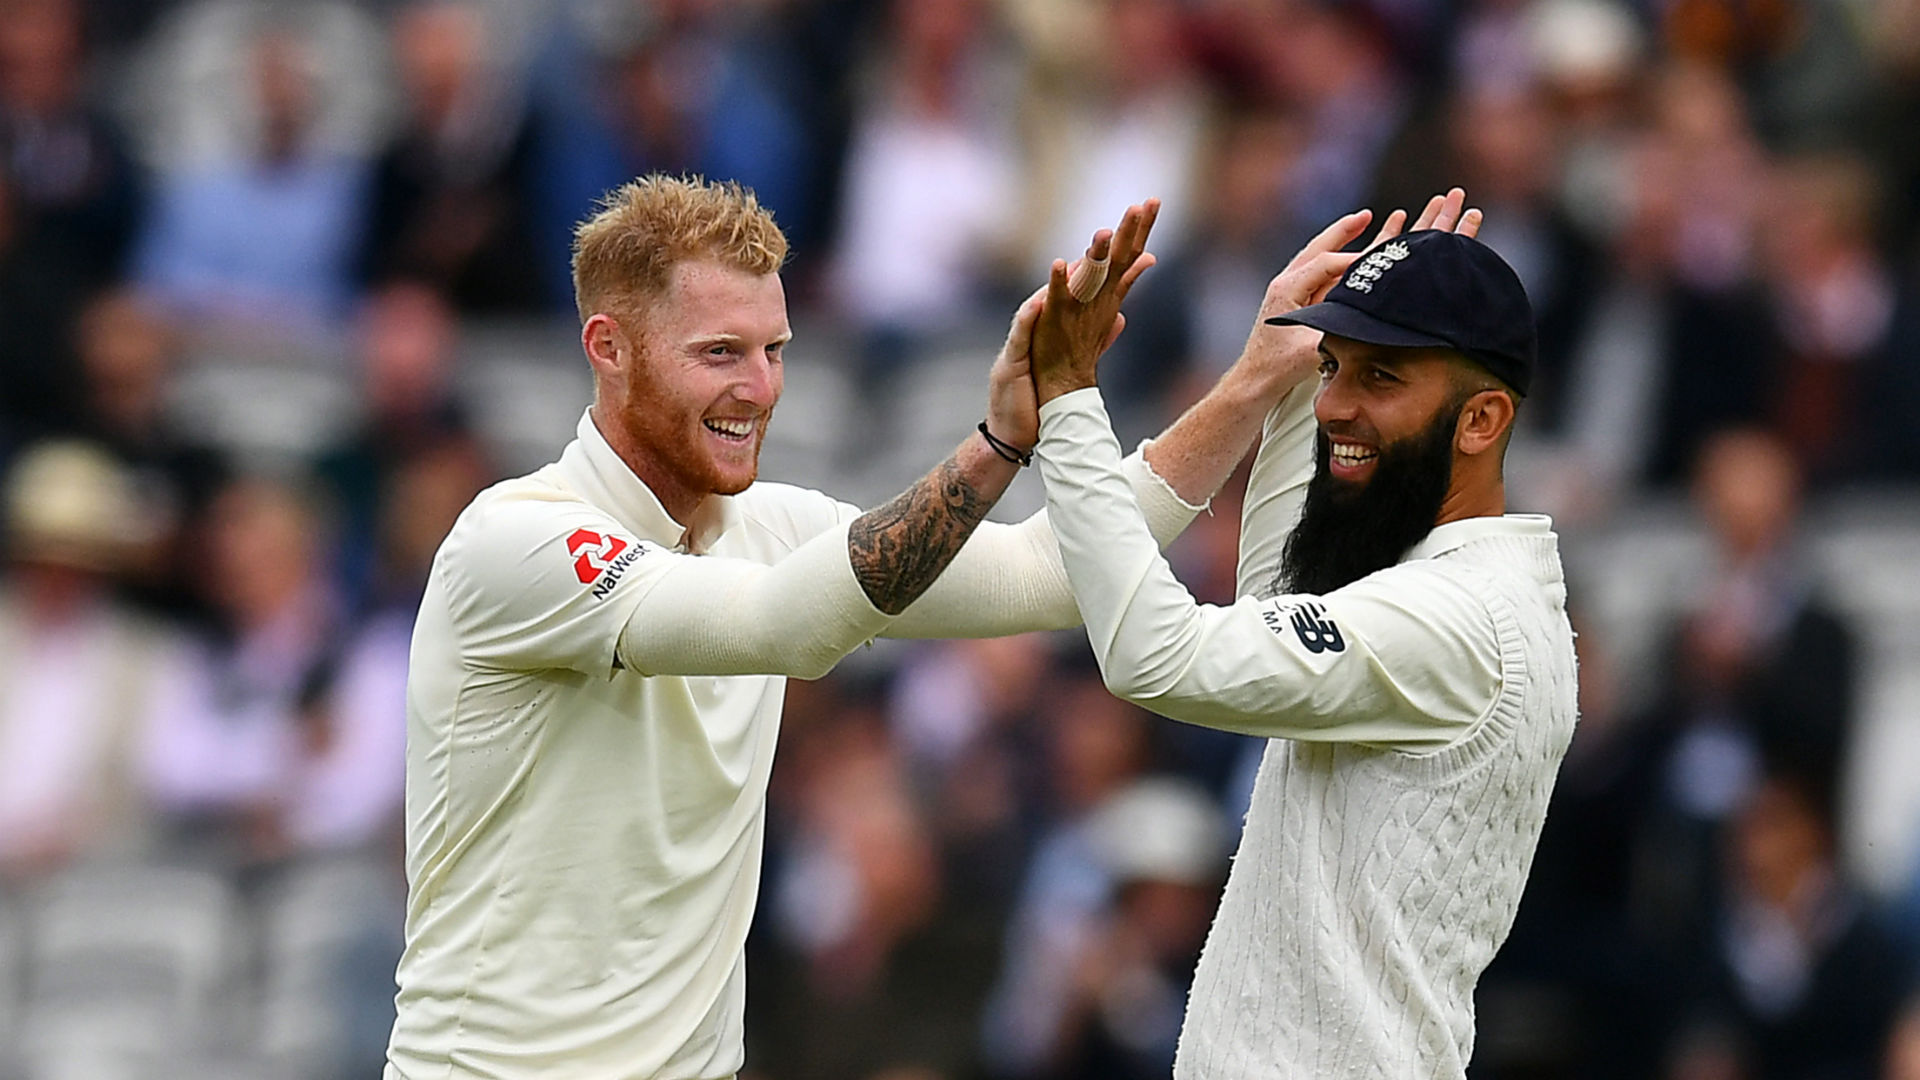 Police investigating Ben Stokes' arrest appeal for two witnesses to come forward